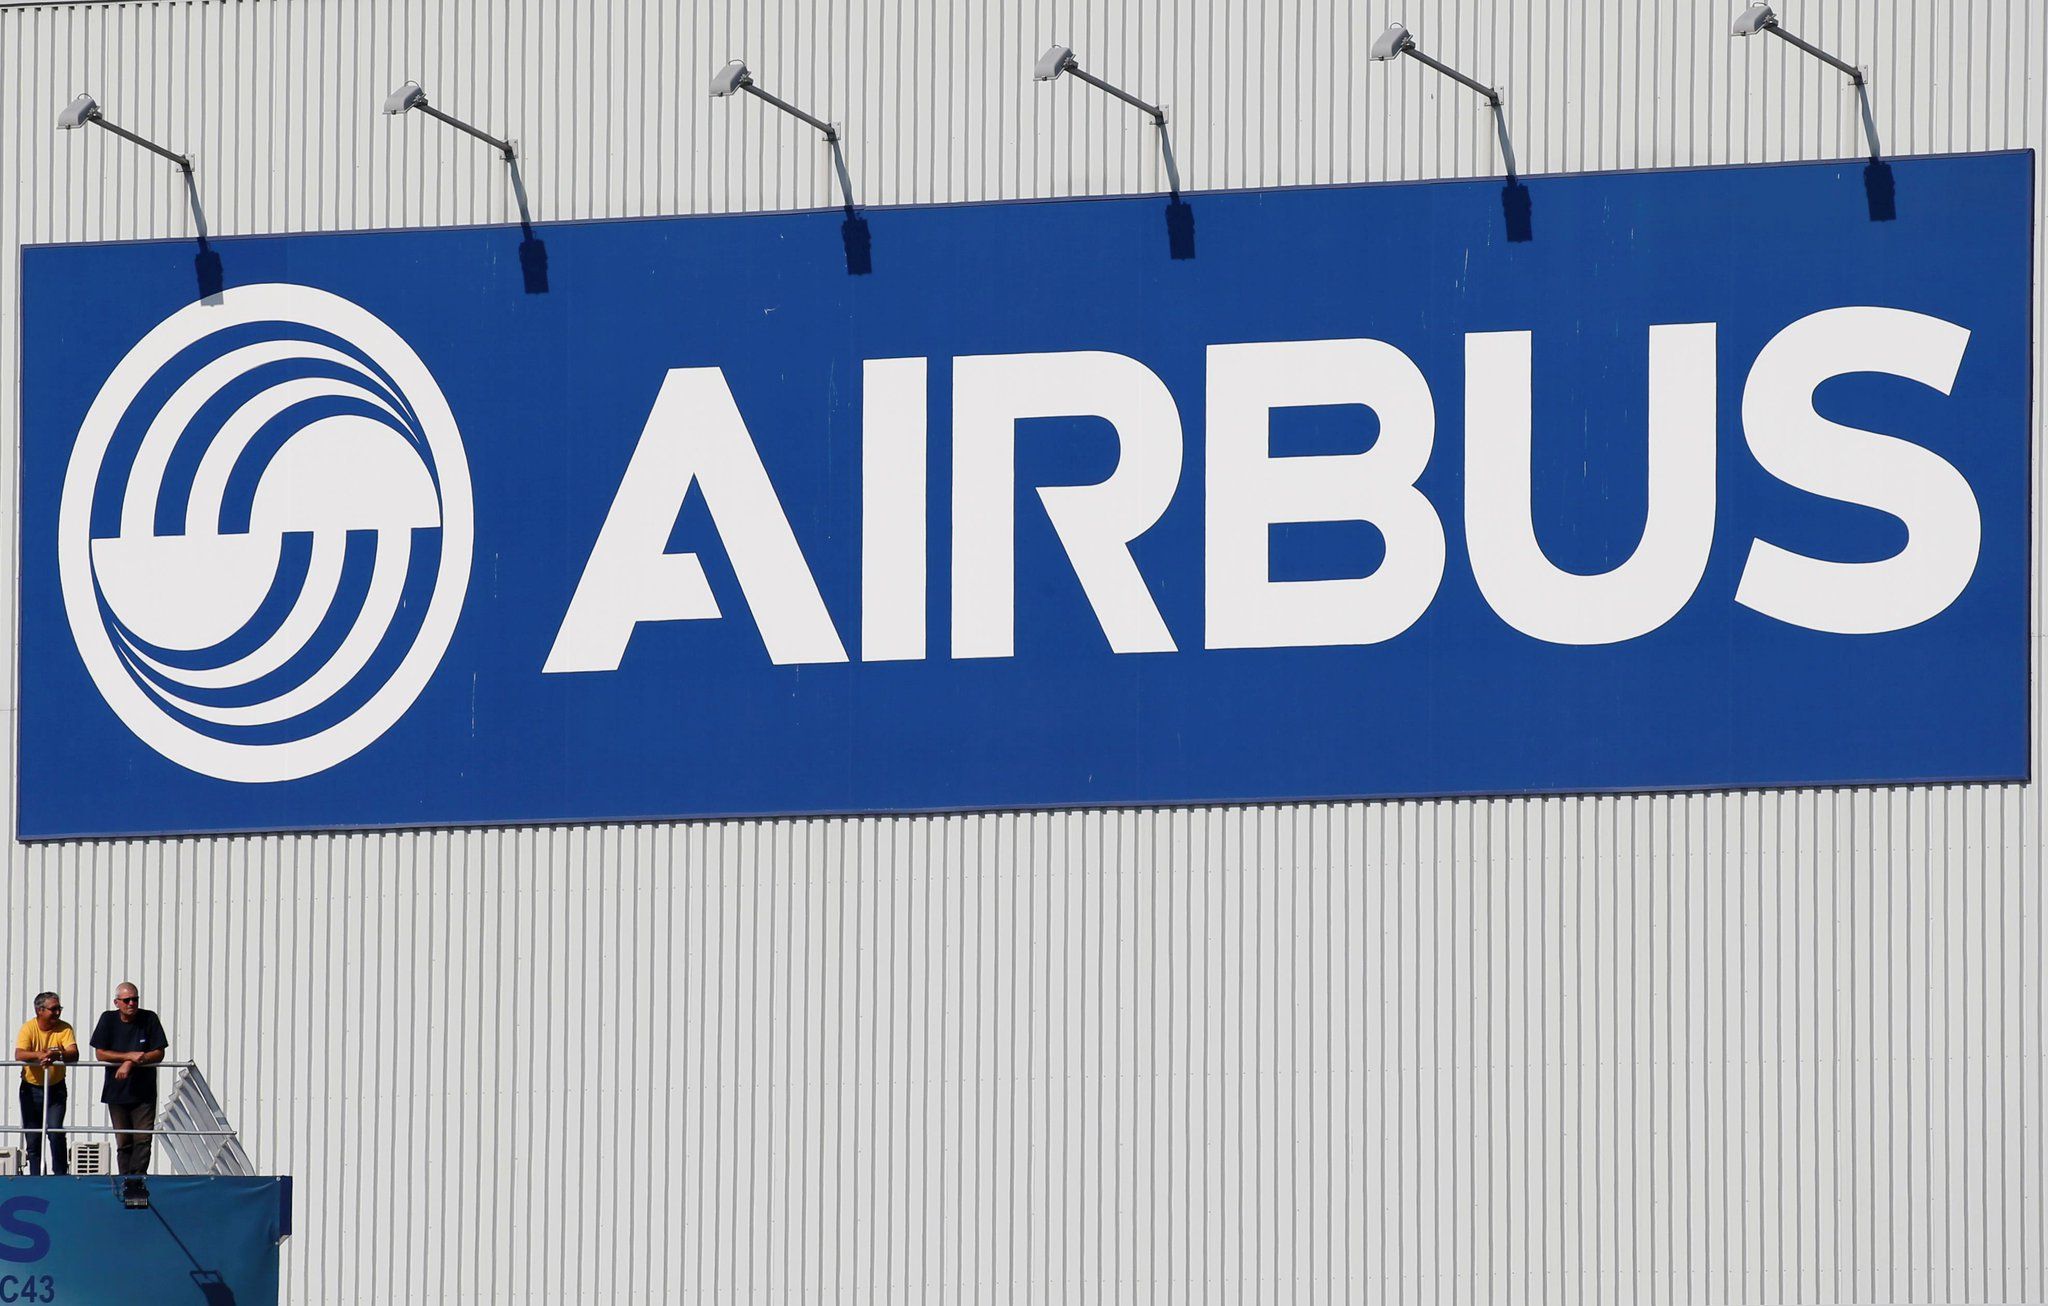 European aerospace giant Airbus drops out of Saudi investment conference https://t.co/KJTbacZLwY #JamalKhashoggi https://t.co/hehJN0qMfM